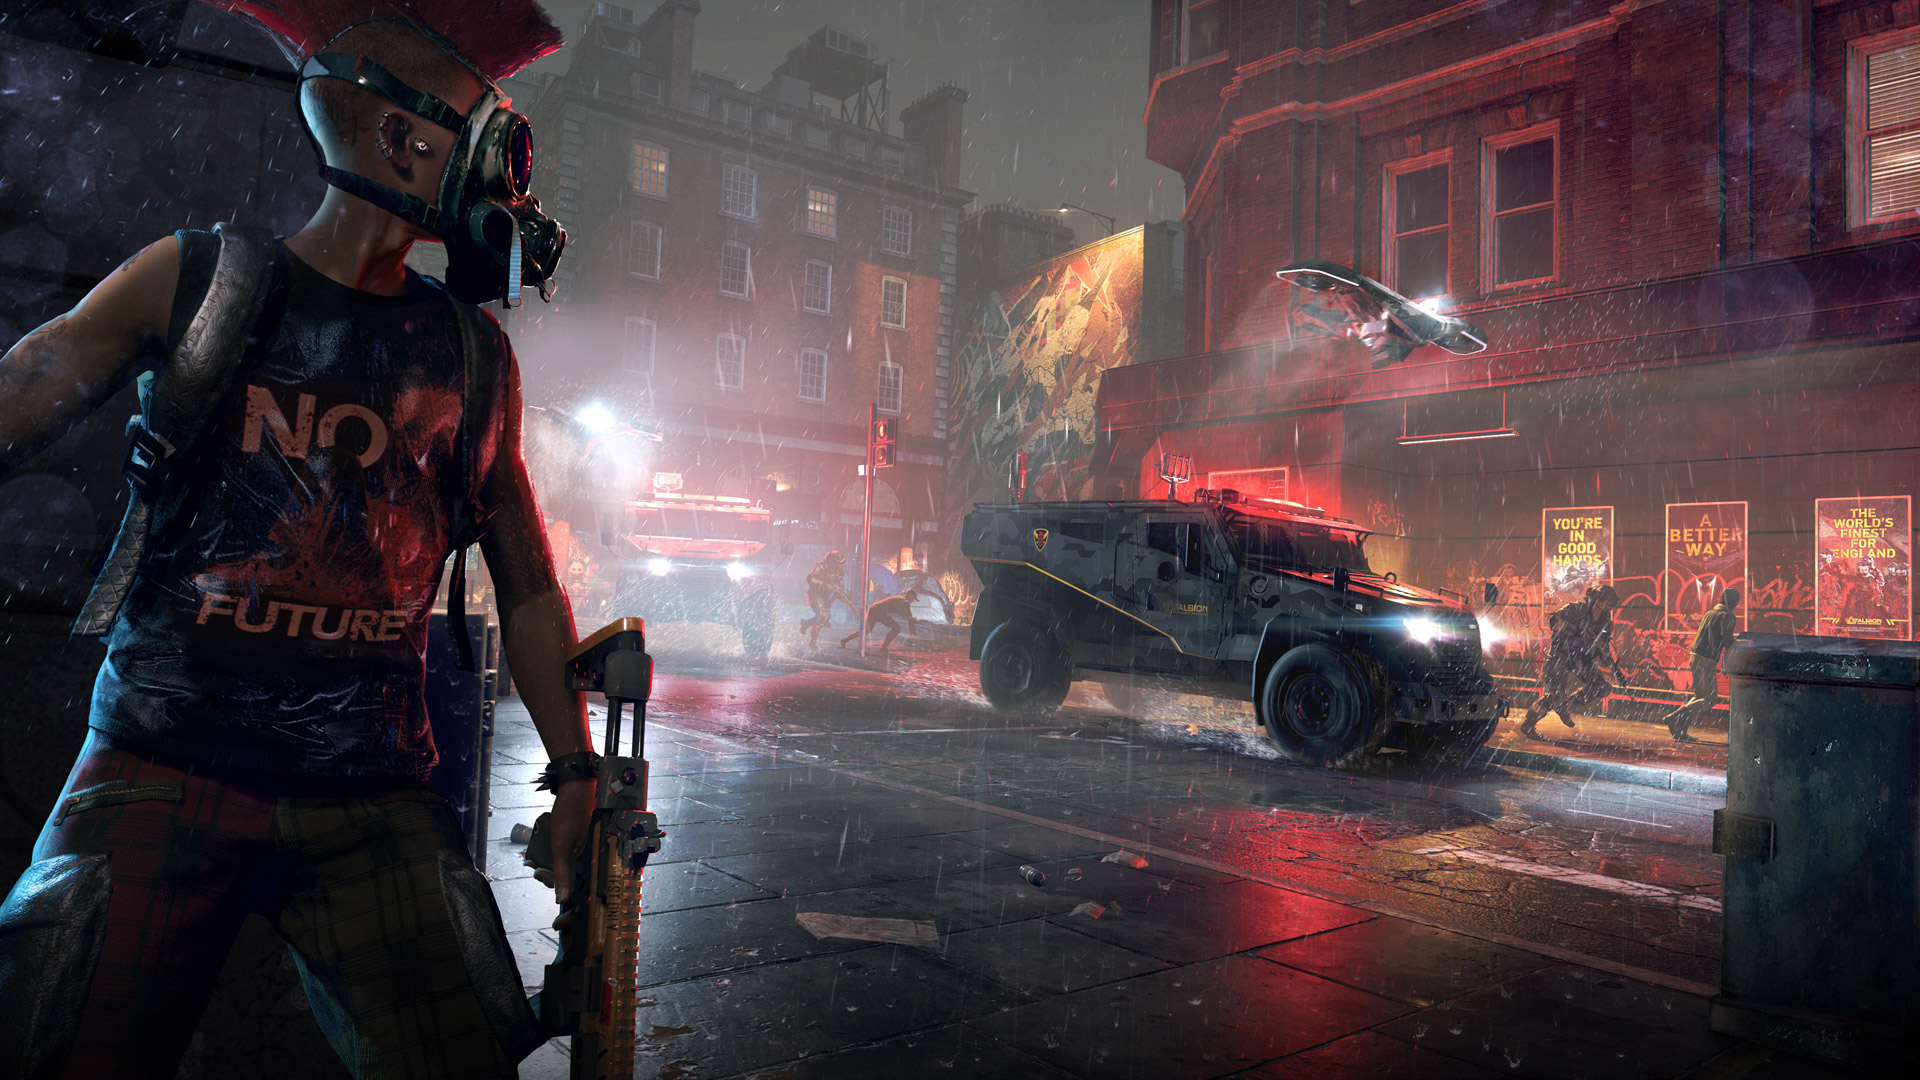 Watch Dogs Legion Wallpaper in 1920x1080